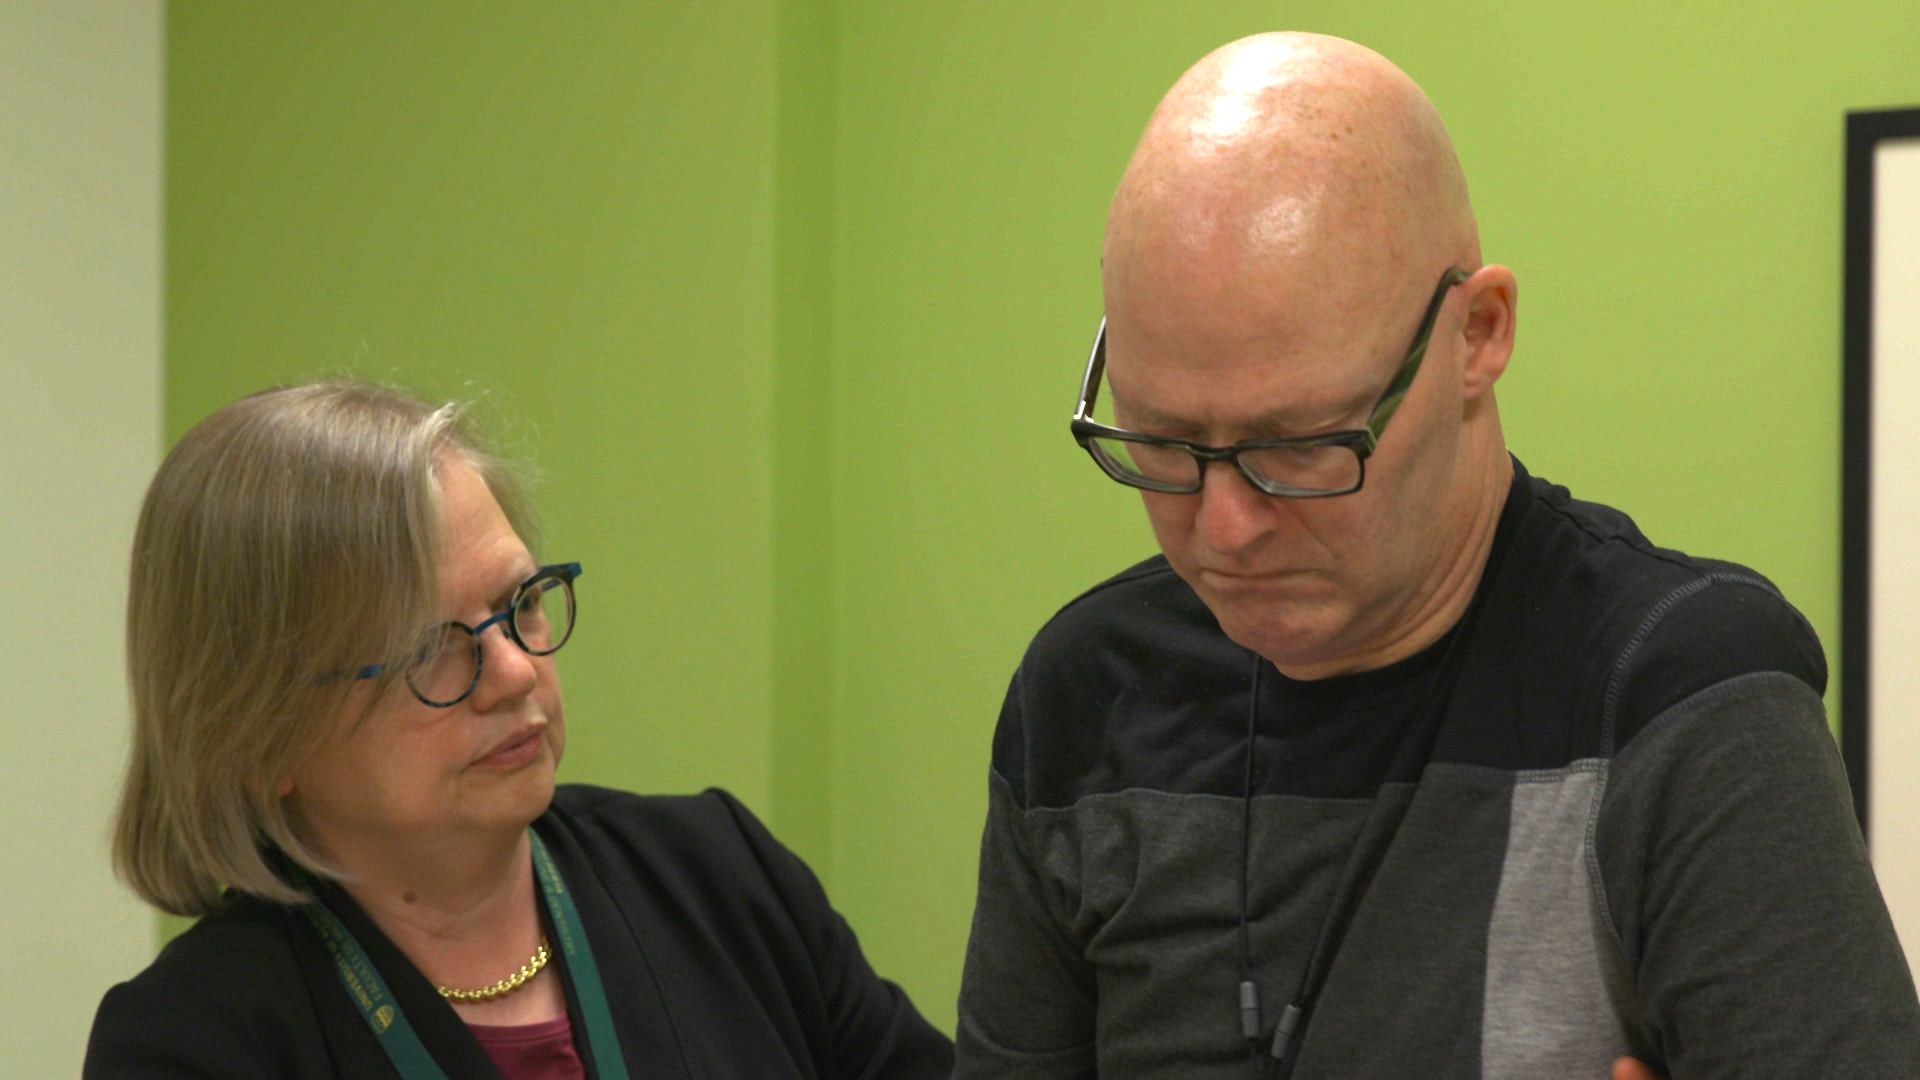 L to R:  Dr. Wendy Johnston and John Tuckwell, ALS patient